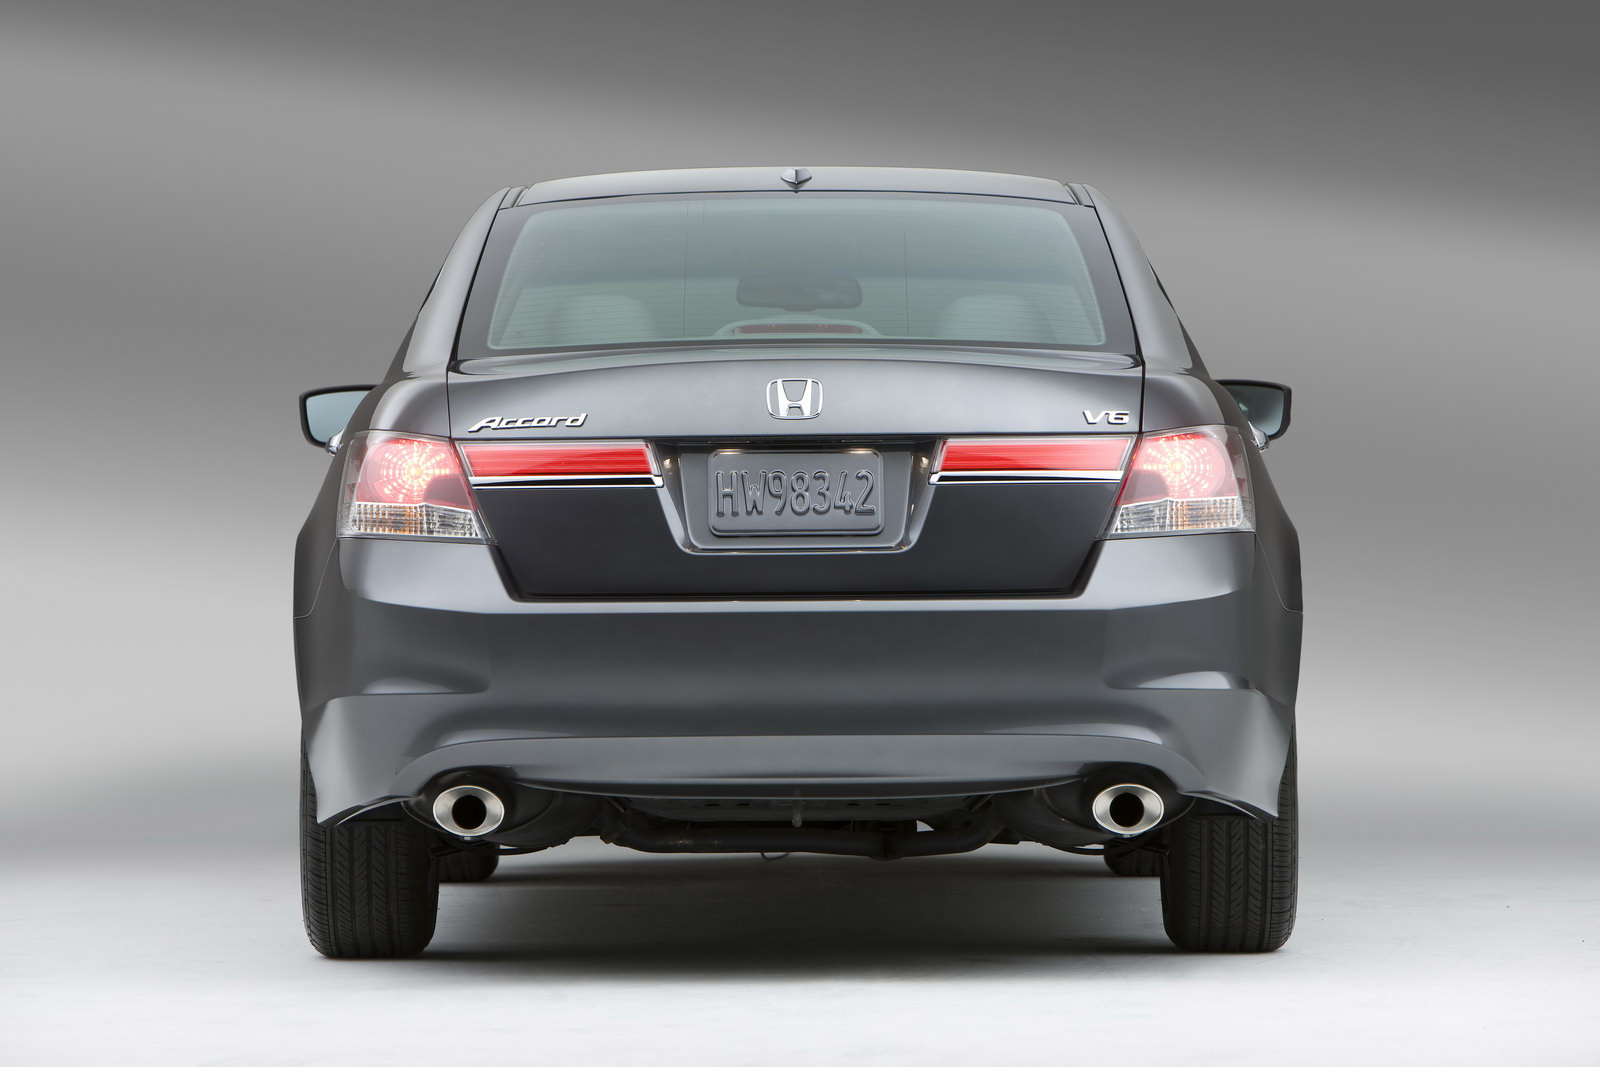 2011 Honda Accord Sedan And Coupe Facelift First Photos And Details